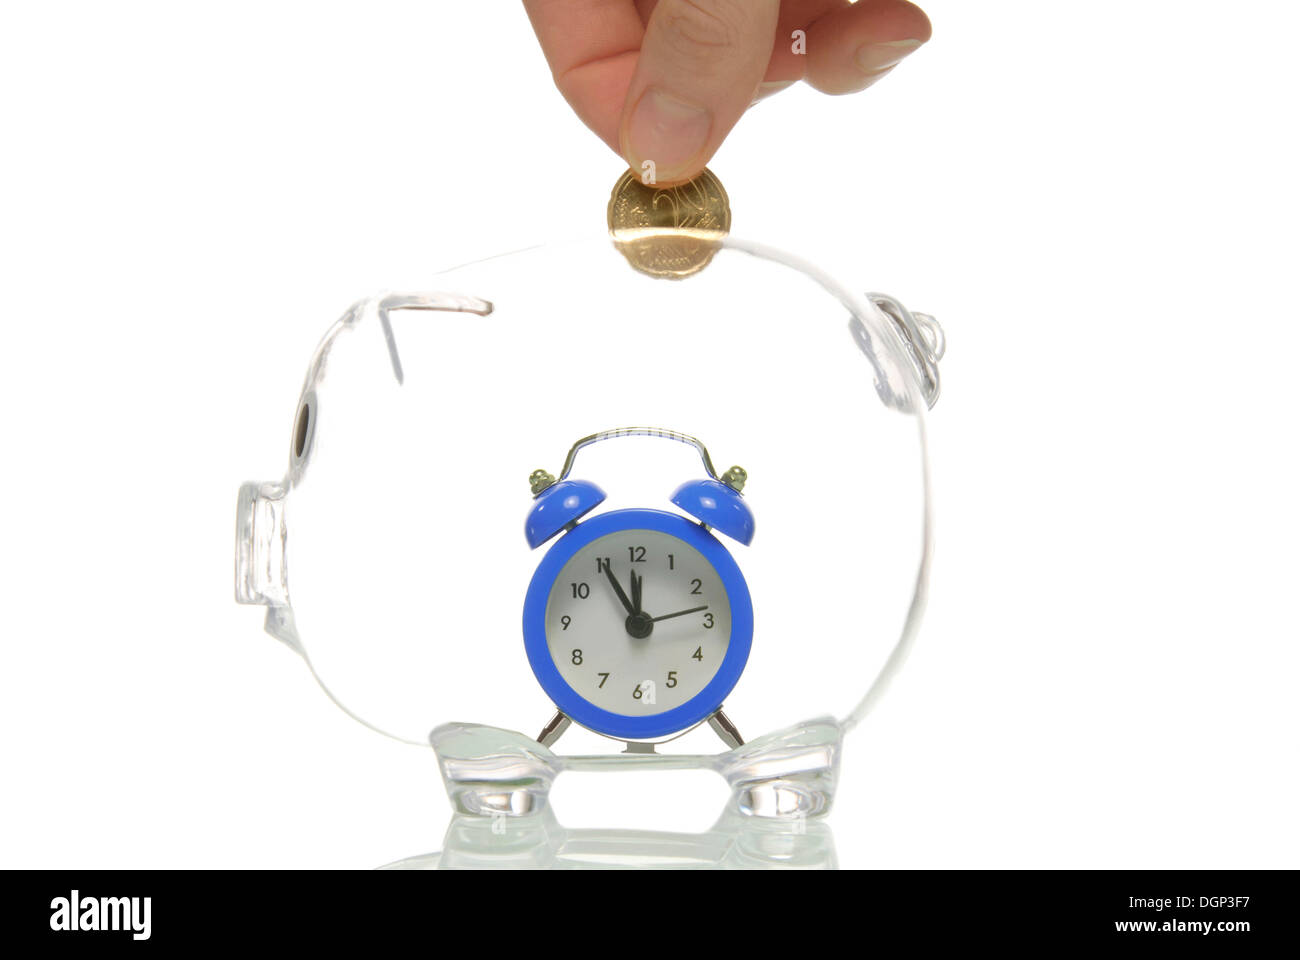 Piggy bank with an alarm clock showing 5 to 12 - Stock Image